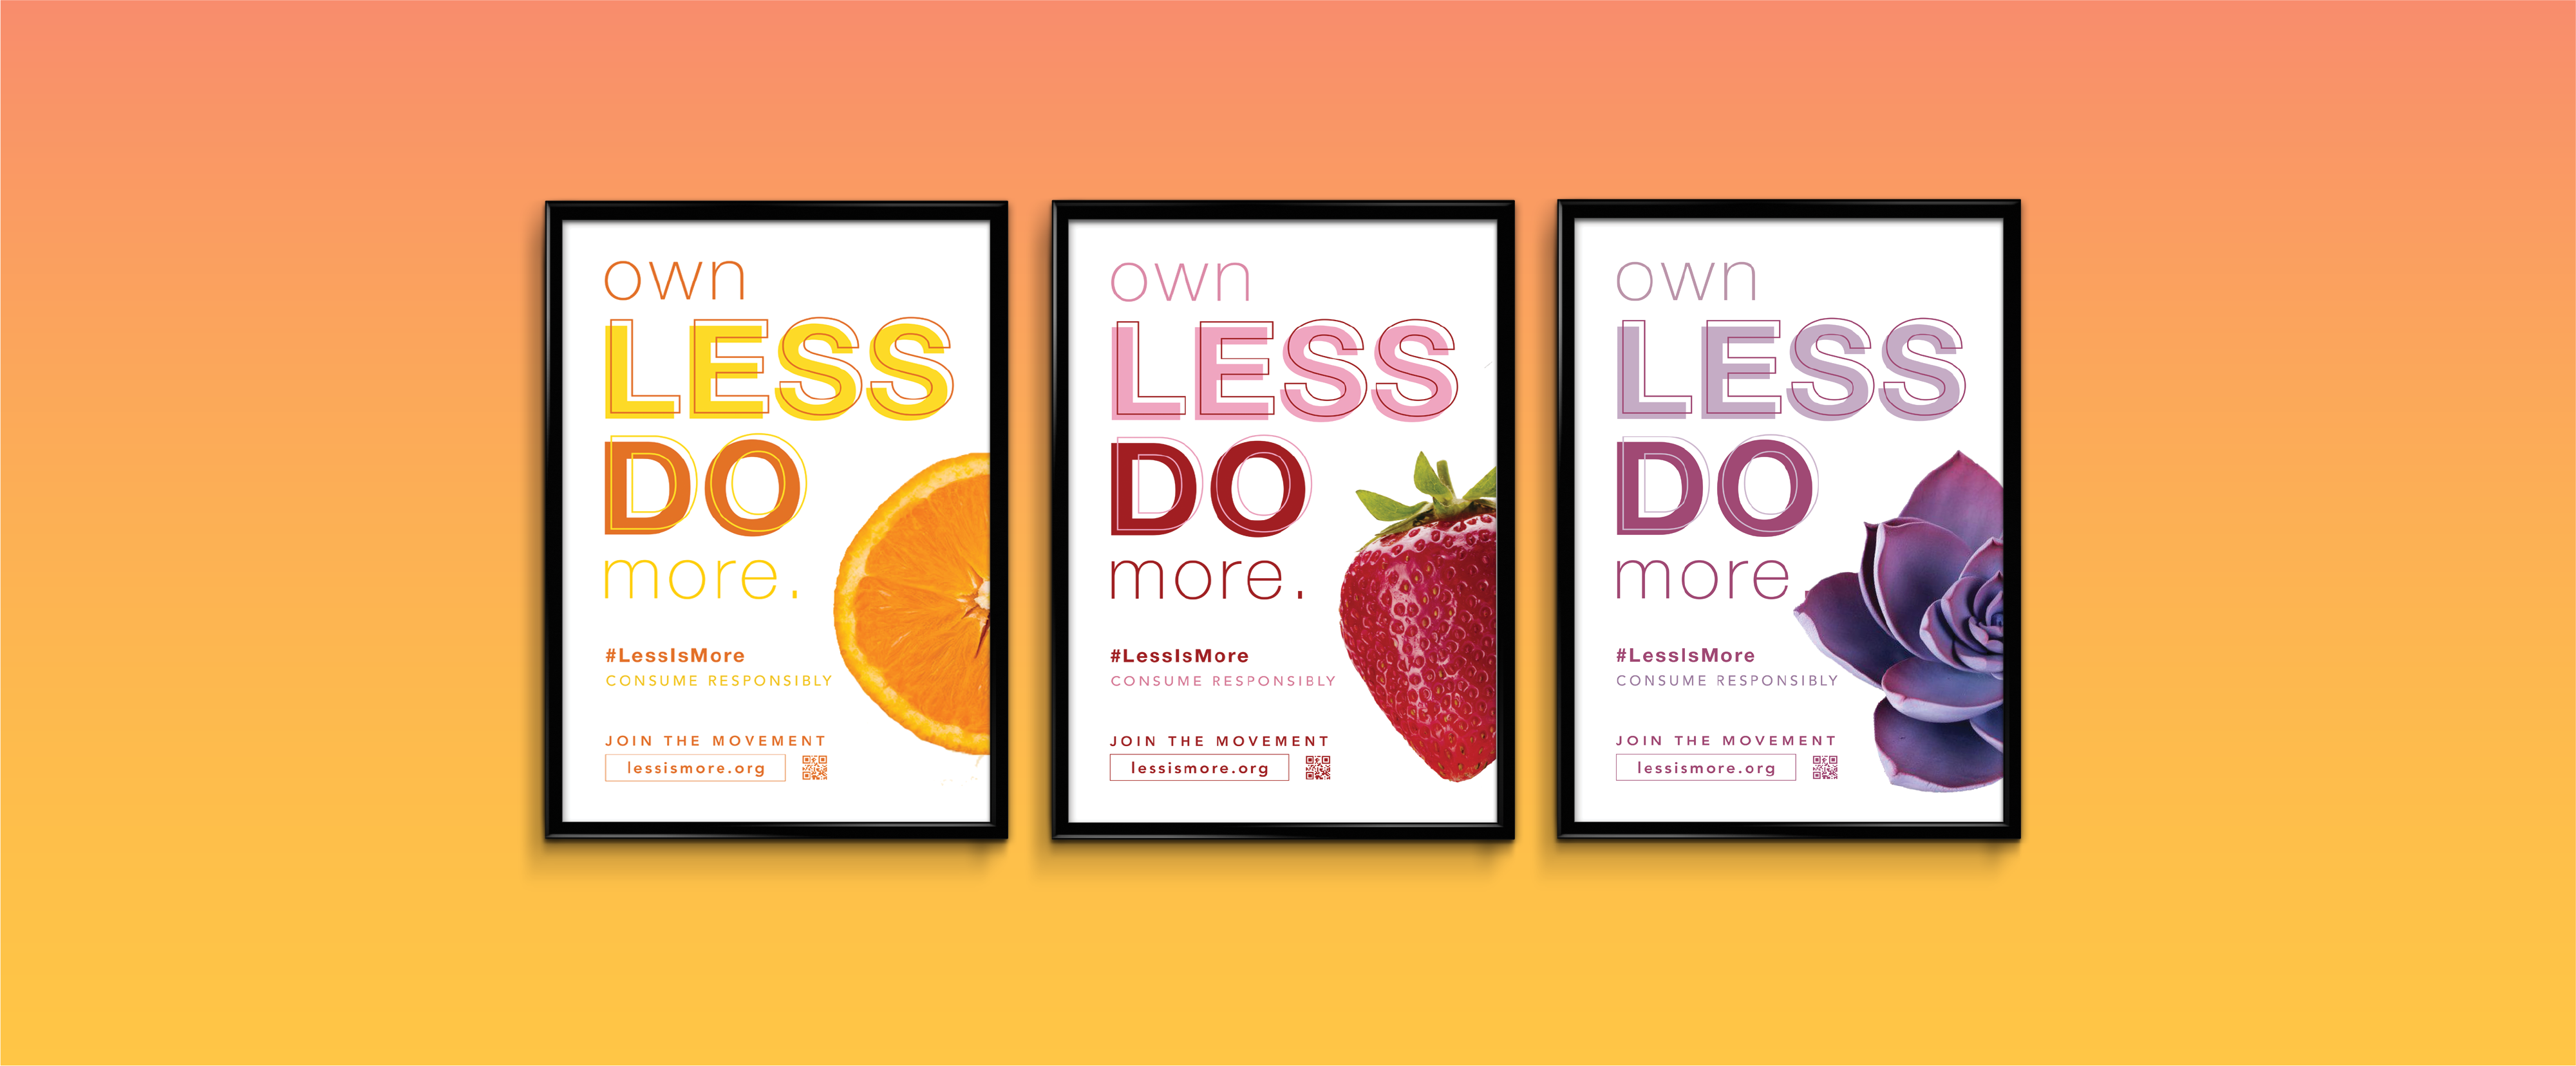 """Less Is More"""" is a social campaign and non-profit organization that aims to promote responsible and sustainable consumption habits to the public."""